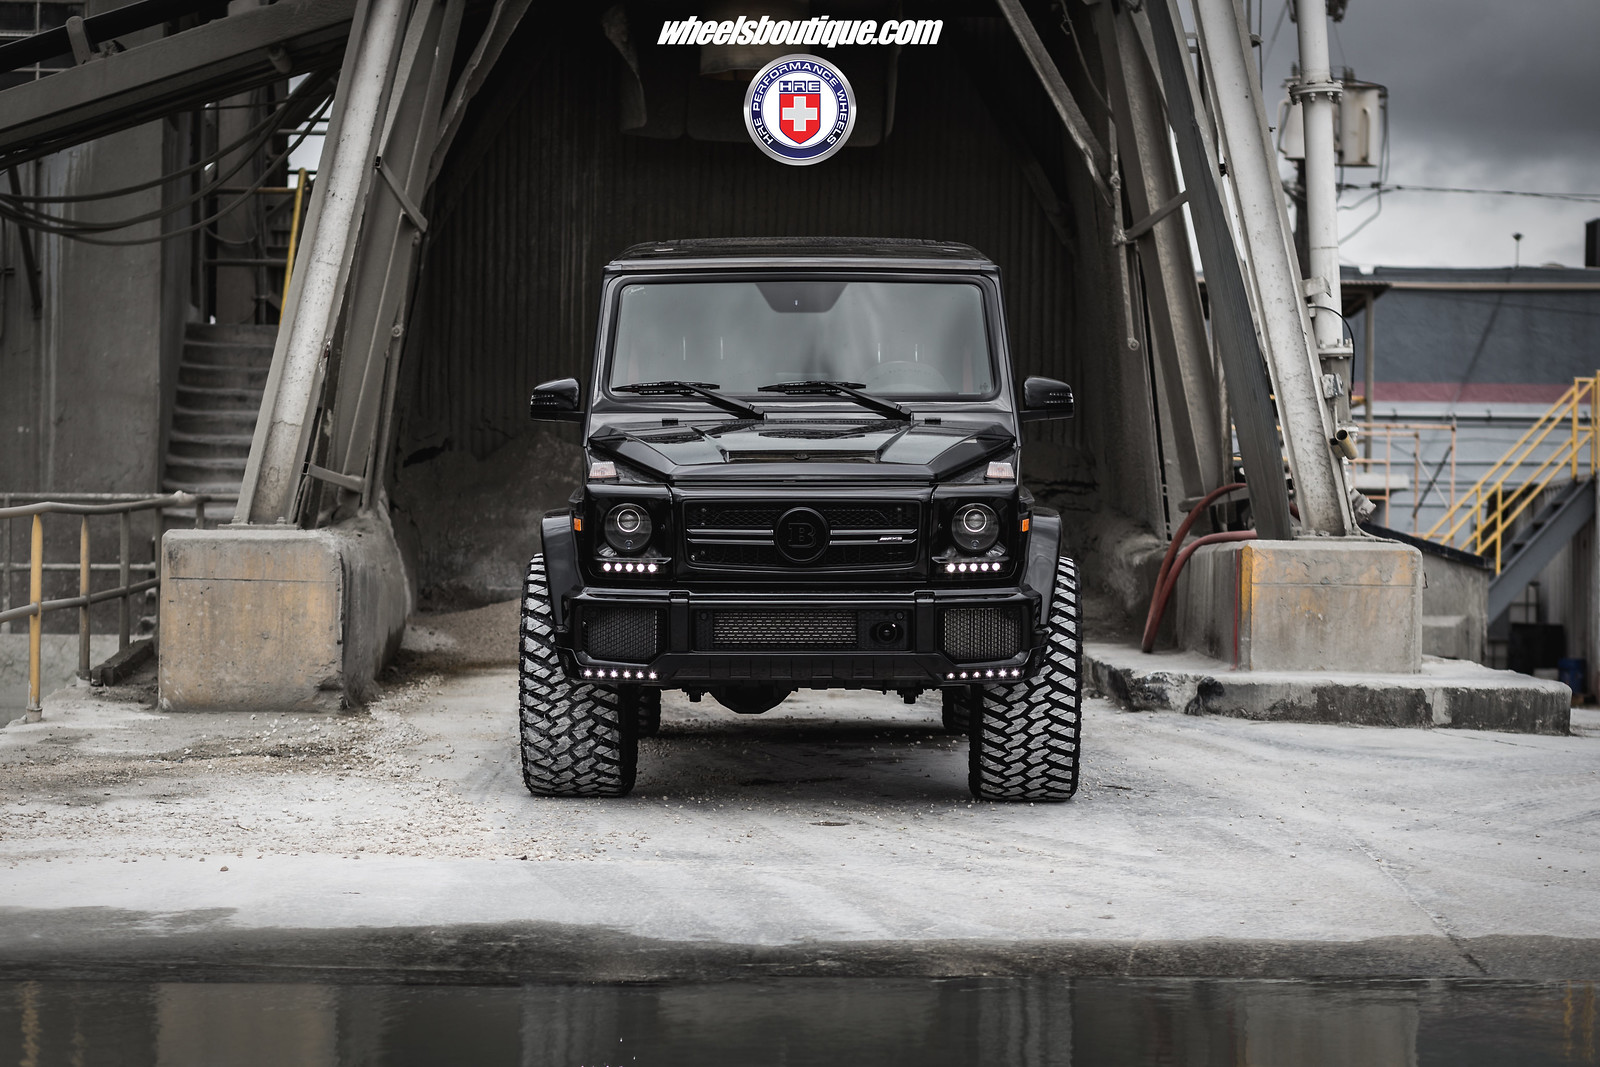 Body Lift Vs Suspension Lift >> To Lift Or Not To Lift? - G65 AMG vs G63 AMG with HRE's by ...